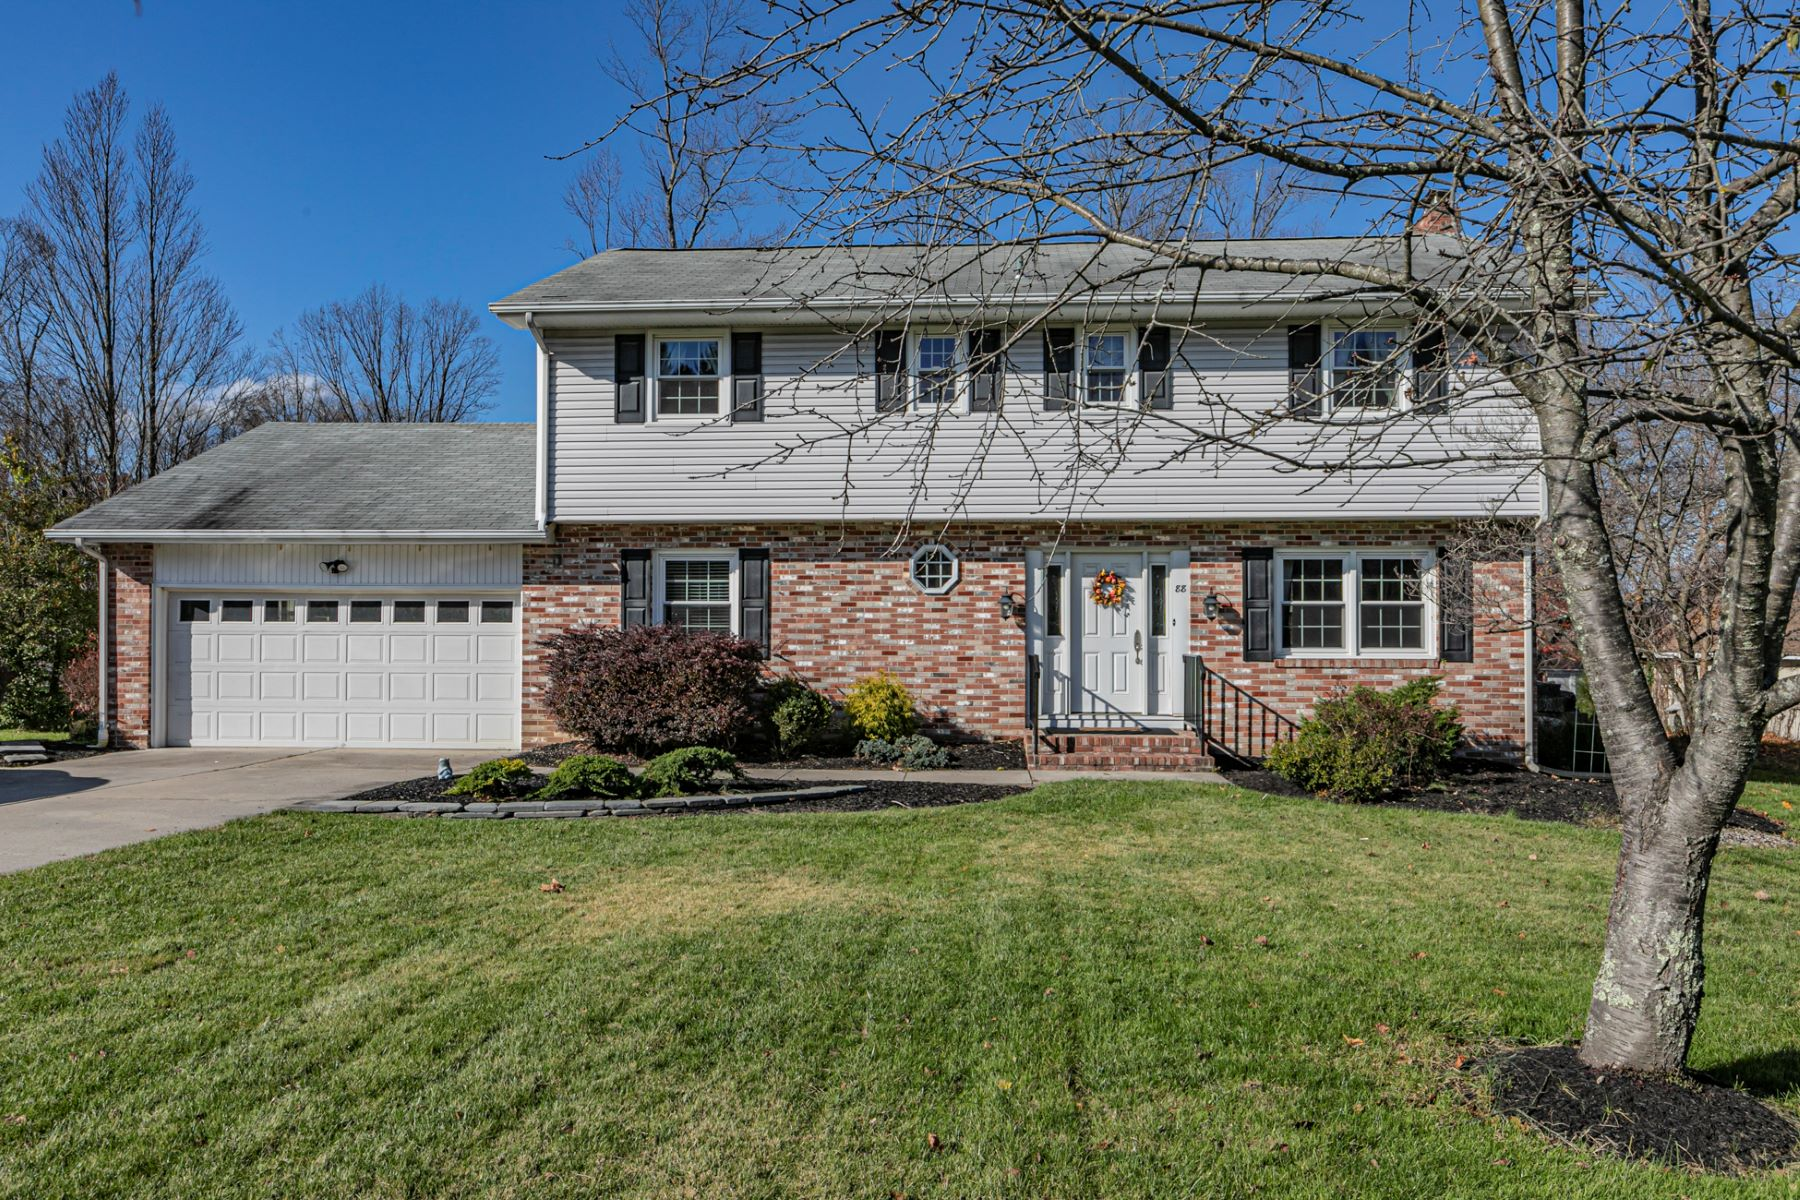 Single Family Homes for Sale at Pristine and Stylish, with Sunshine for Days 88 Mountainview Road, Ewing, New Jersey 08628 United States